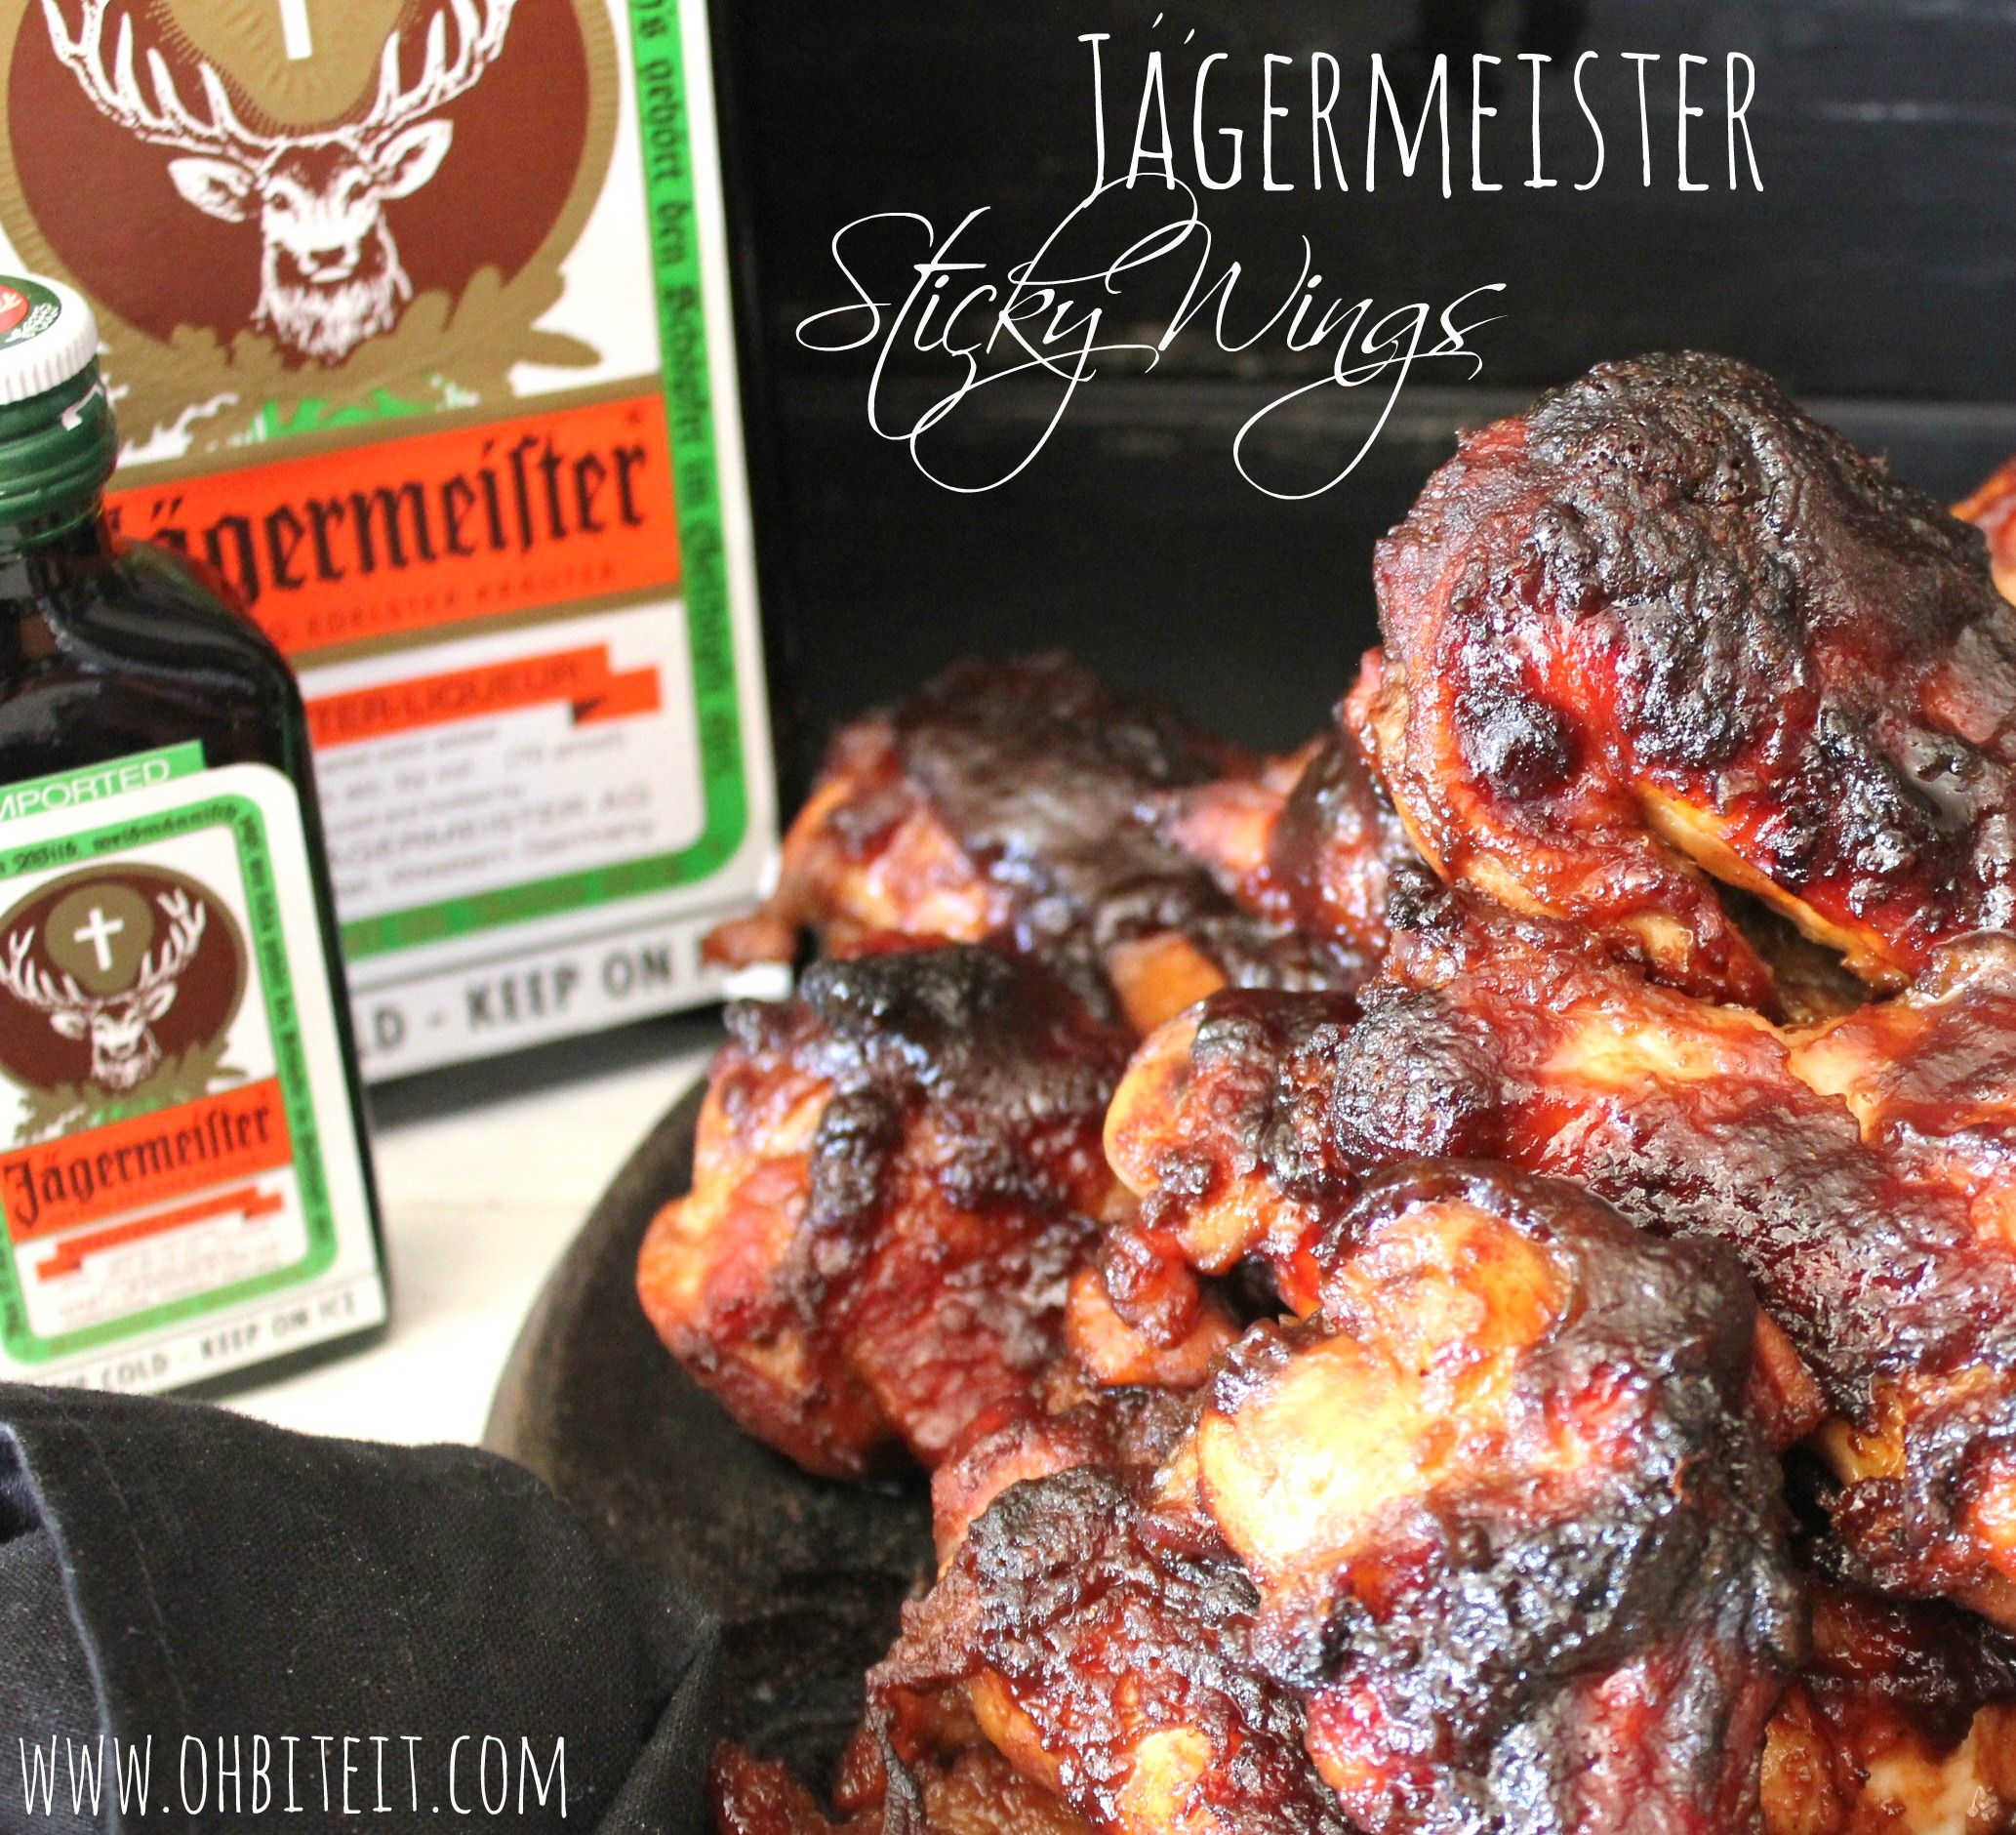 Jagermeister sticky wings food pinterest food and recipes recipes forumfinder Choice Image